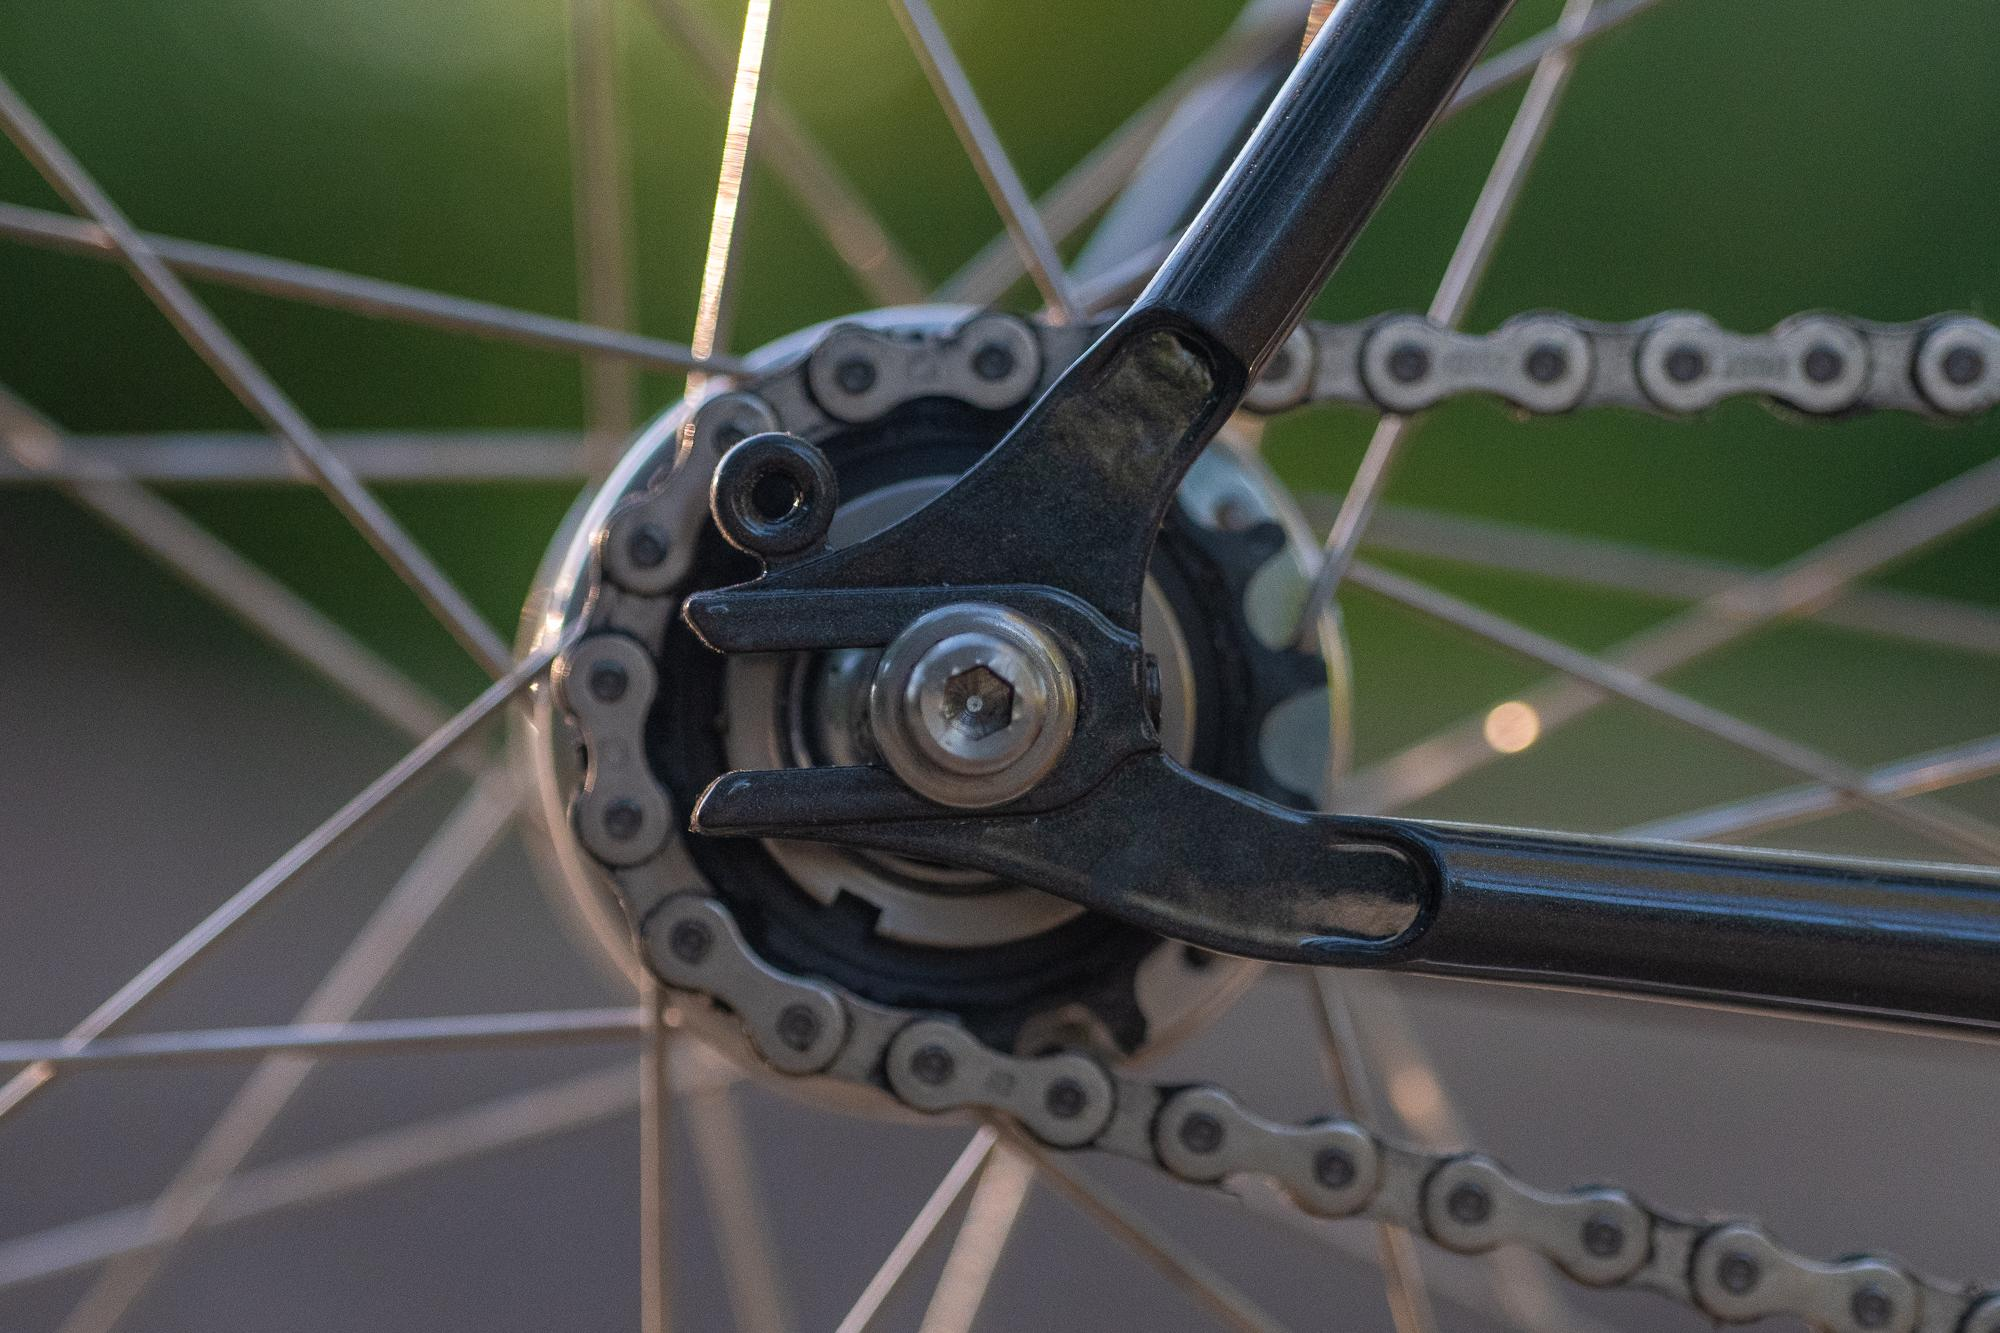 Travel Simplified with the Crust Bikes Breakaway Lightning Bolt